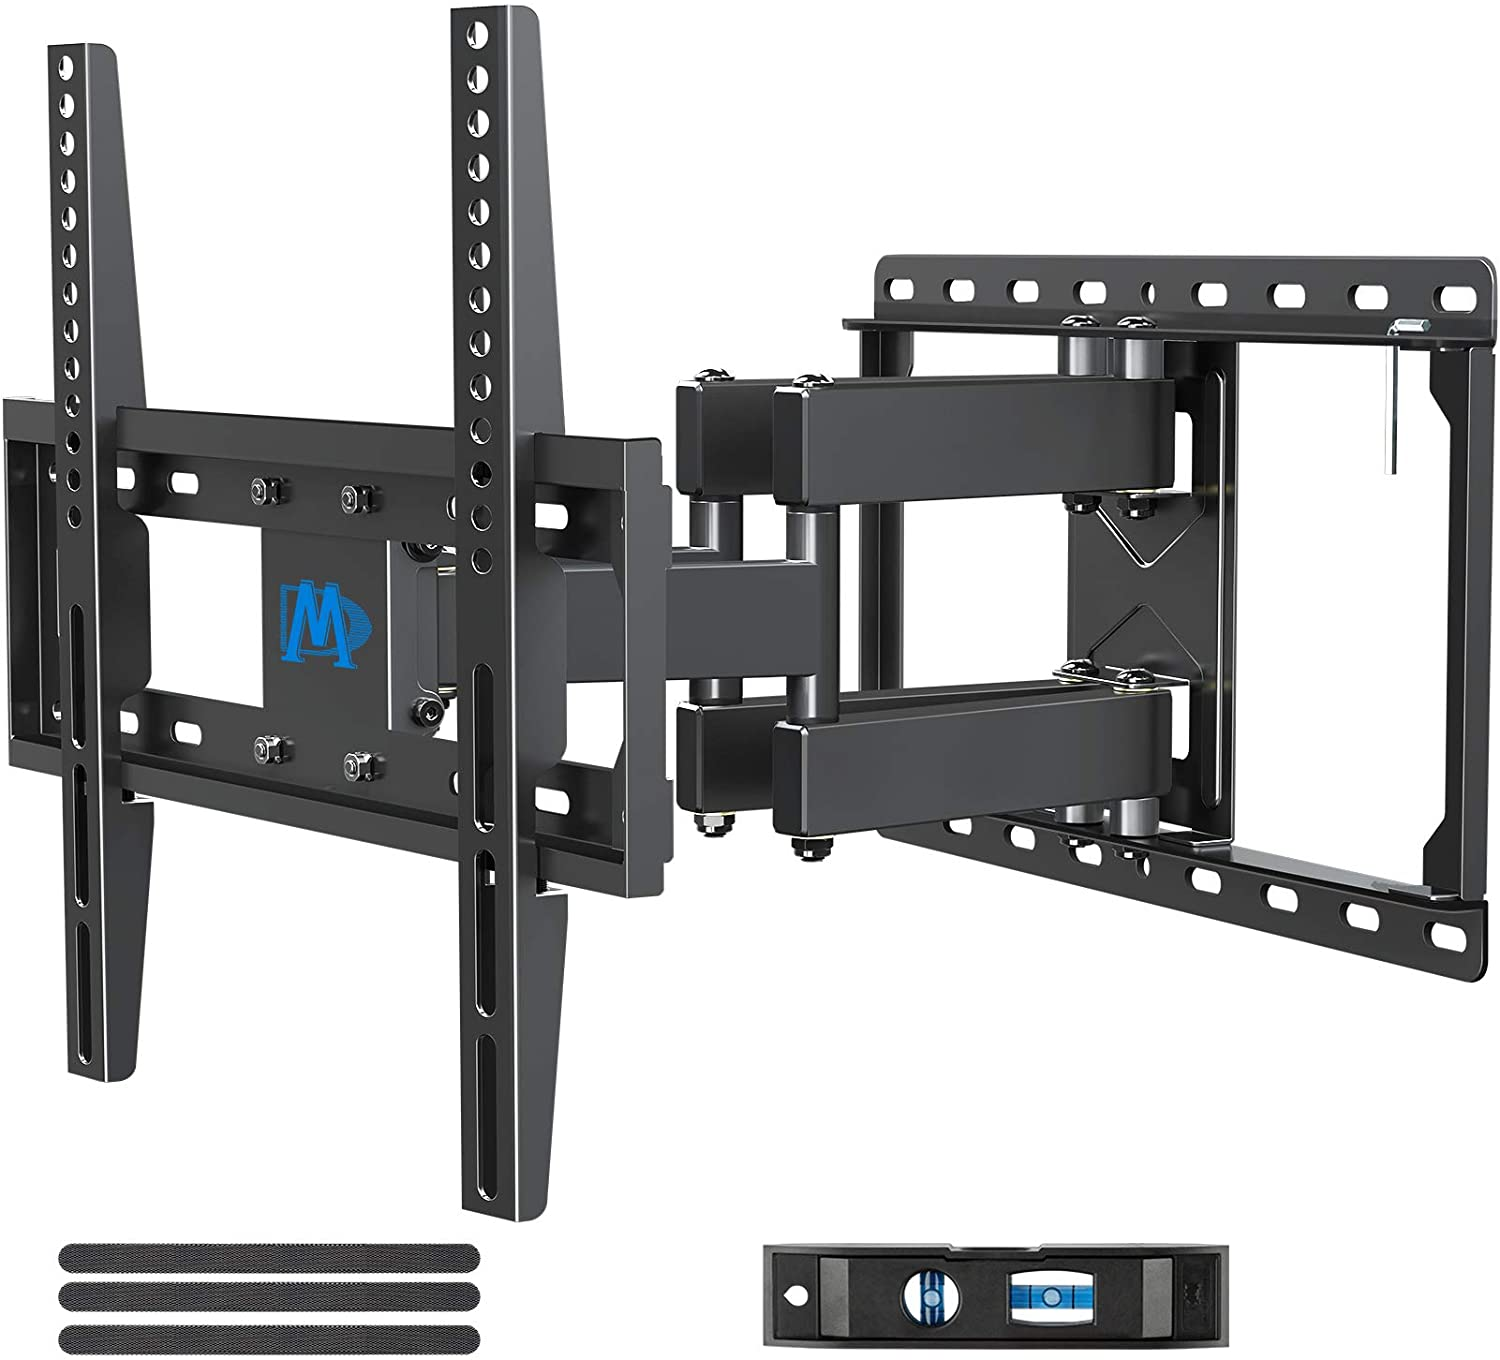 Save 11% + extra $5 off on TV Wall Mount for 32-55 Inch TV